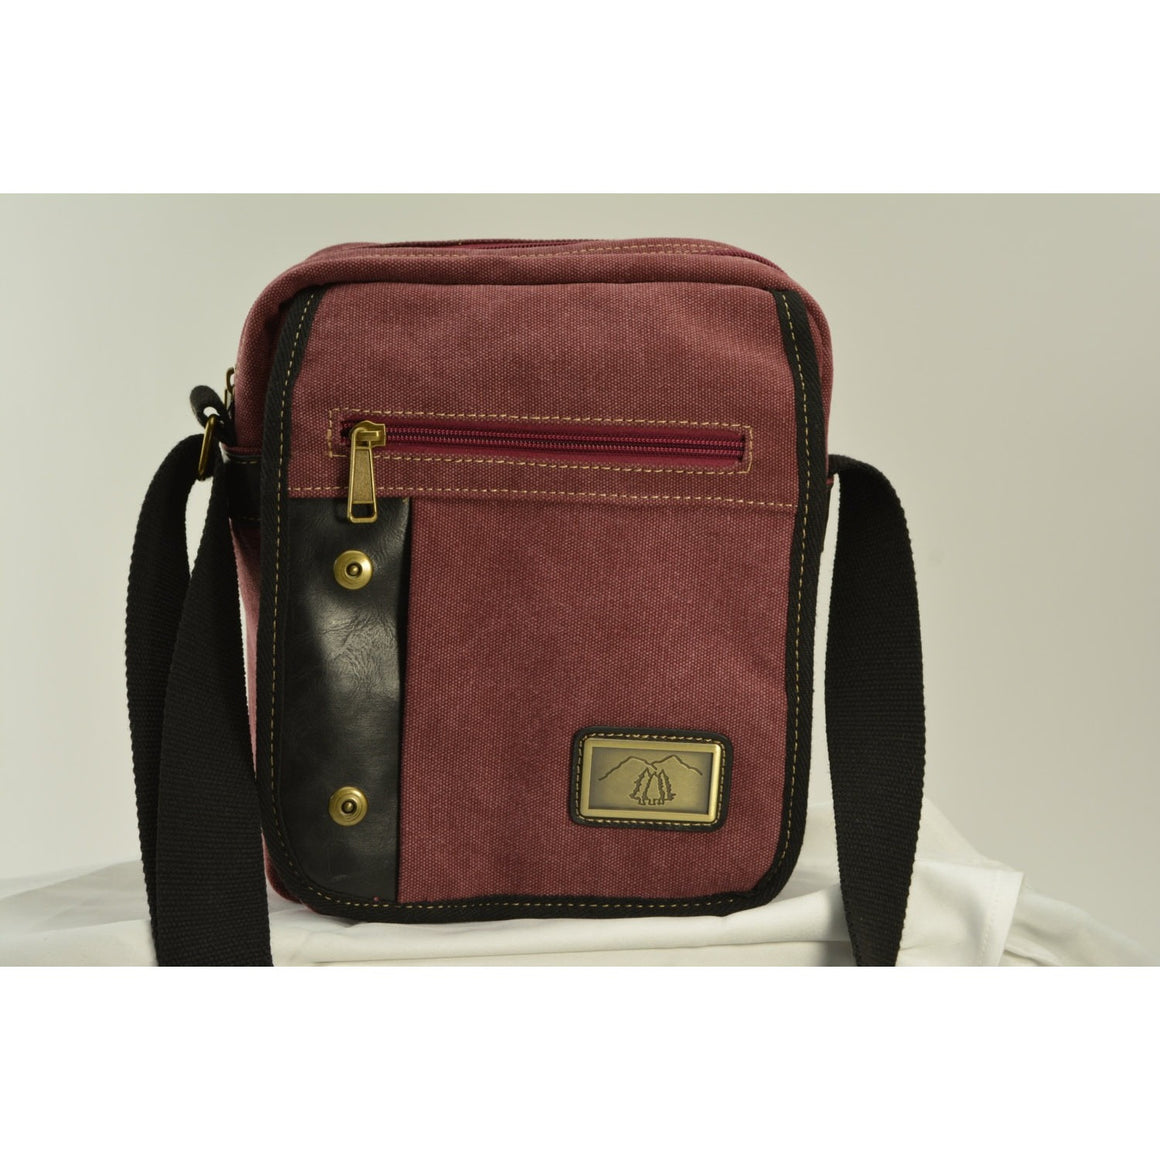 Camille Conceals Burgundy Canvas Concealed Carry Bag - Large Holster - Padded Tablet Section